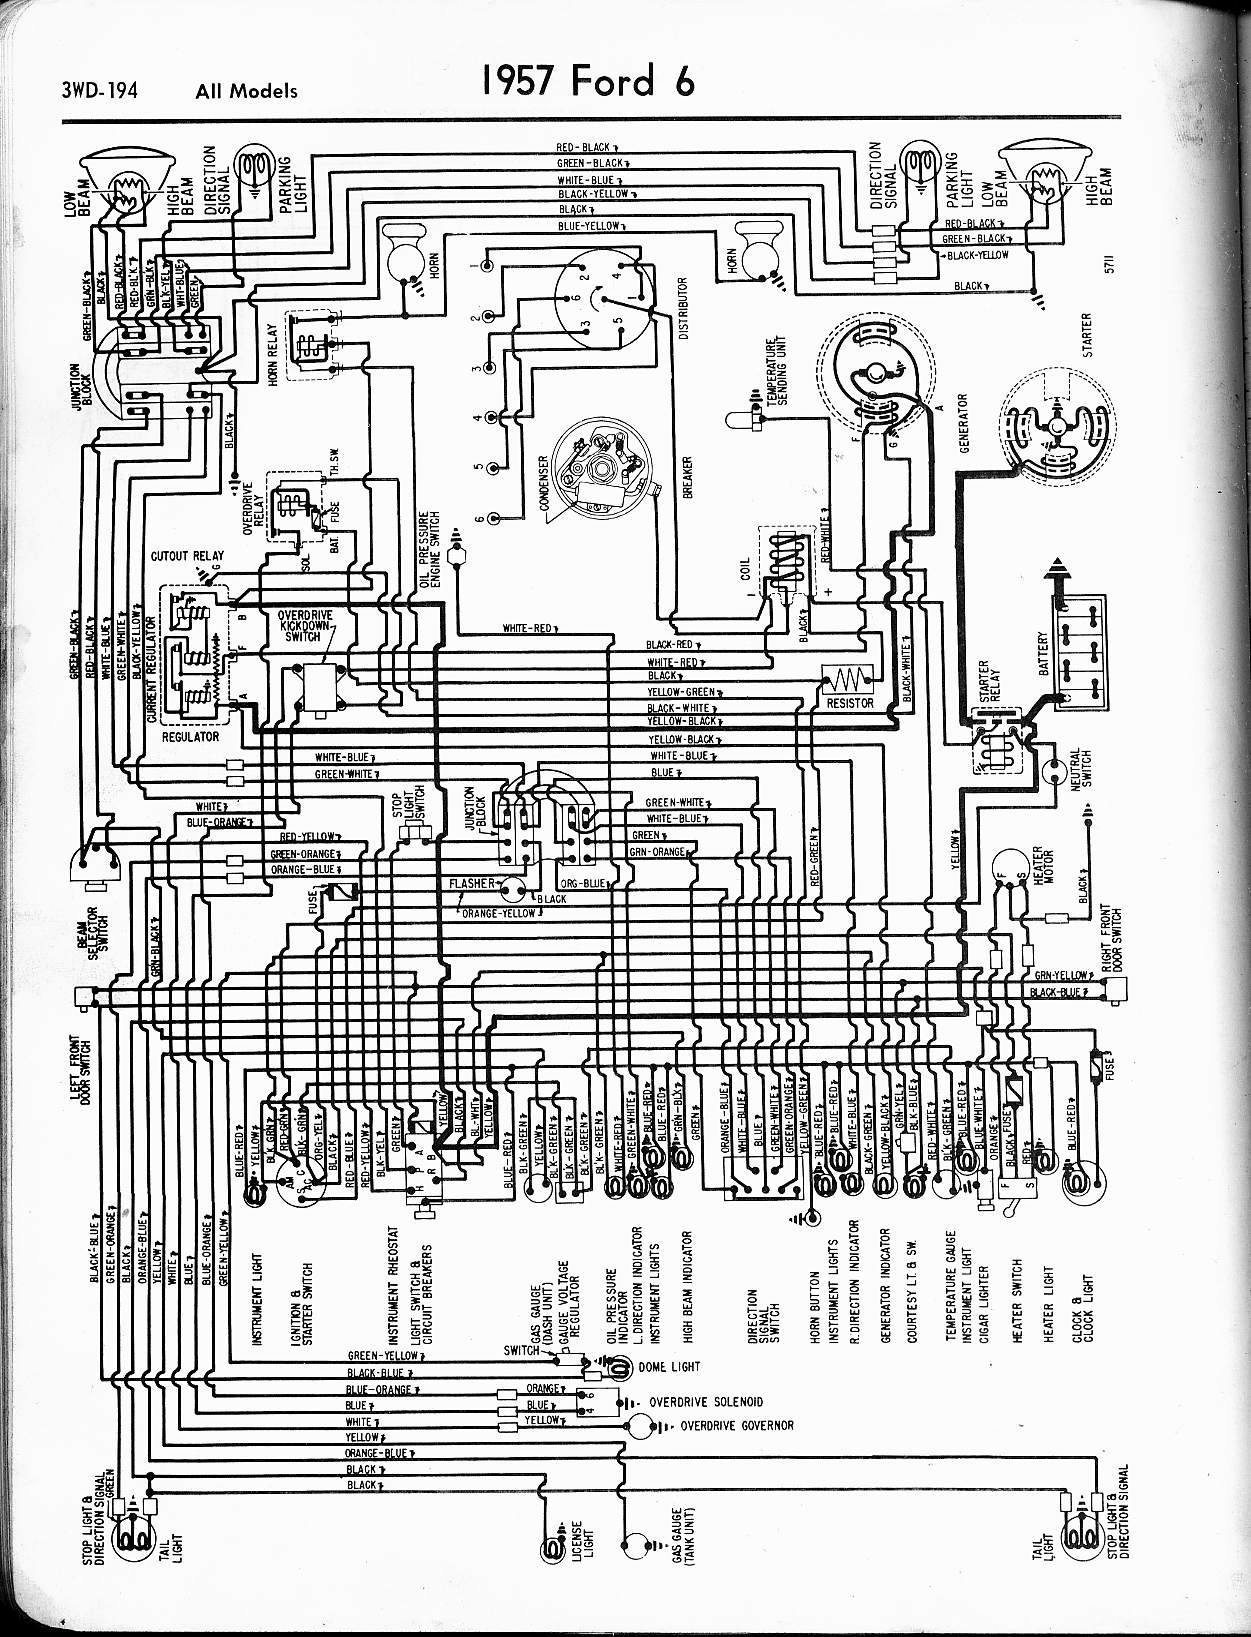 ford wiring harness diagram ford diagrams ford wiring harness diagram radio #1